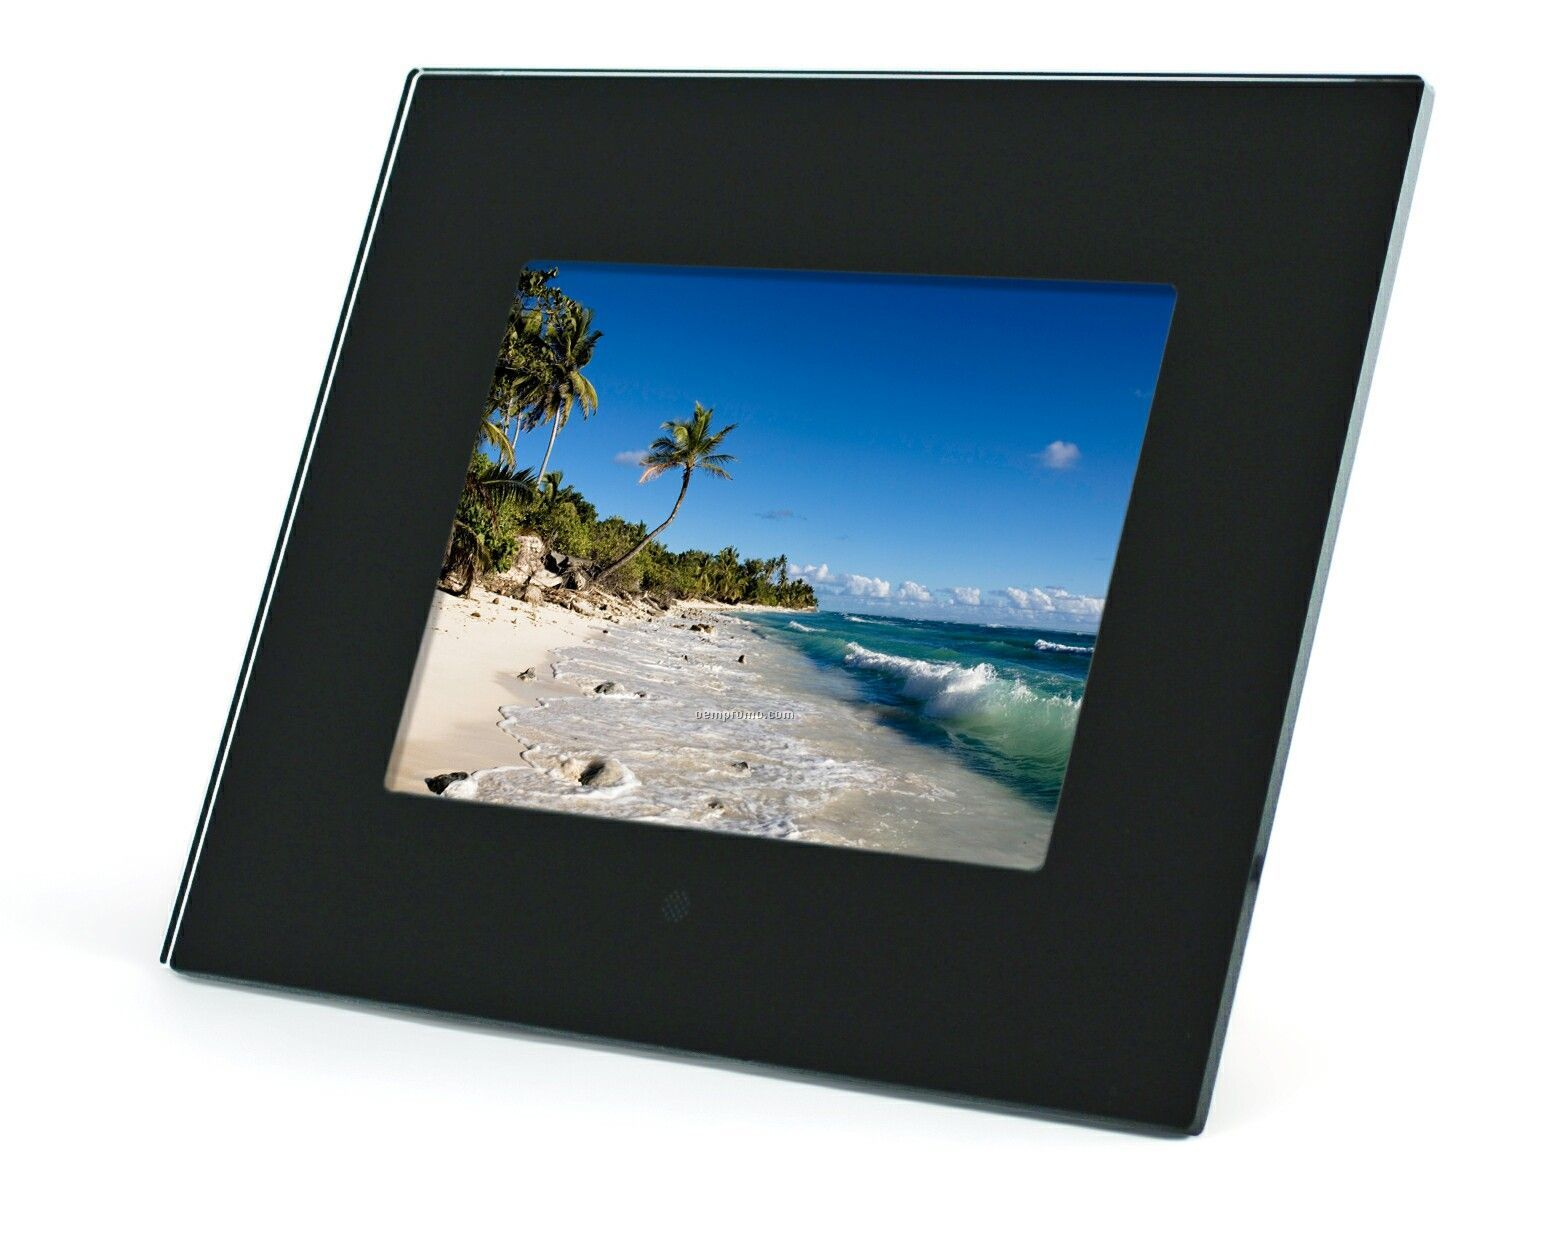 "8"" Digital Picture Frame W/ 128 Mb Memory"